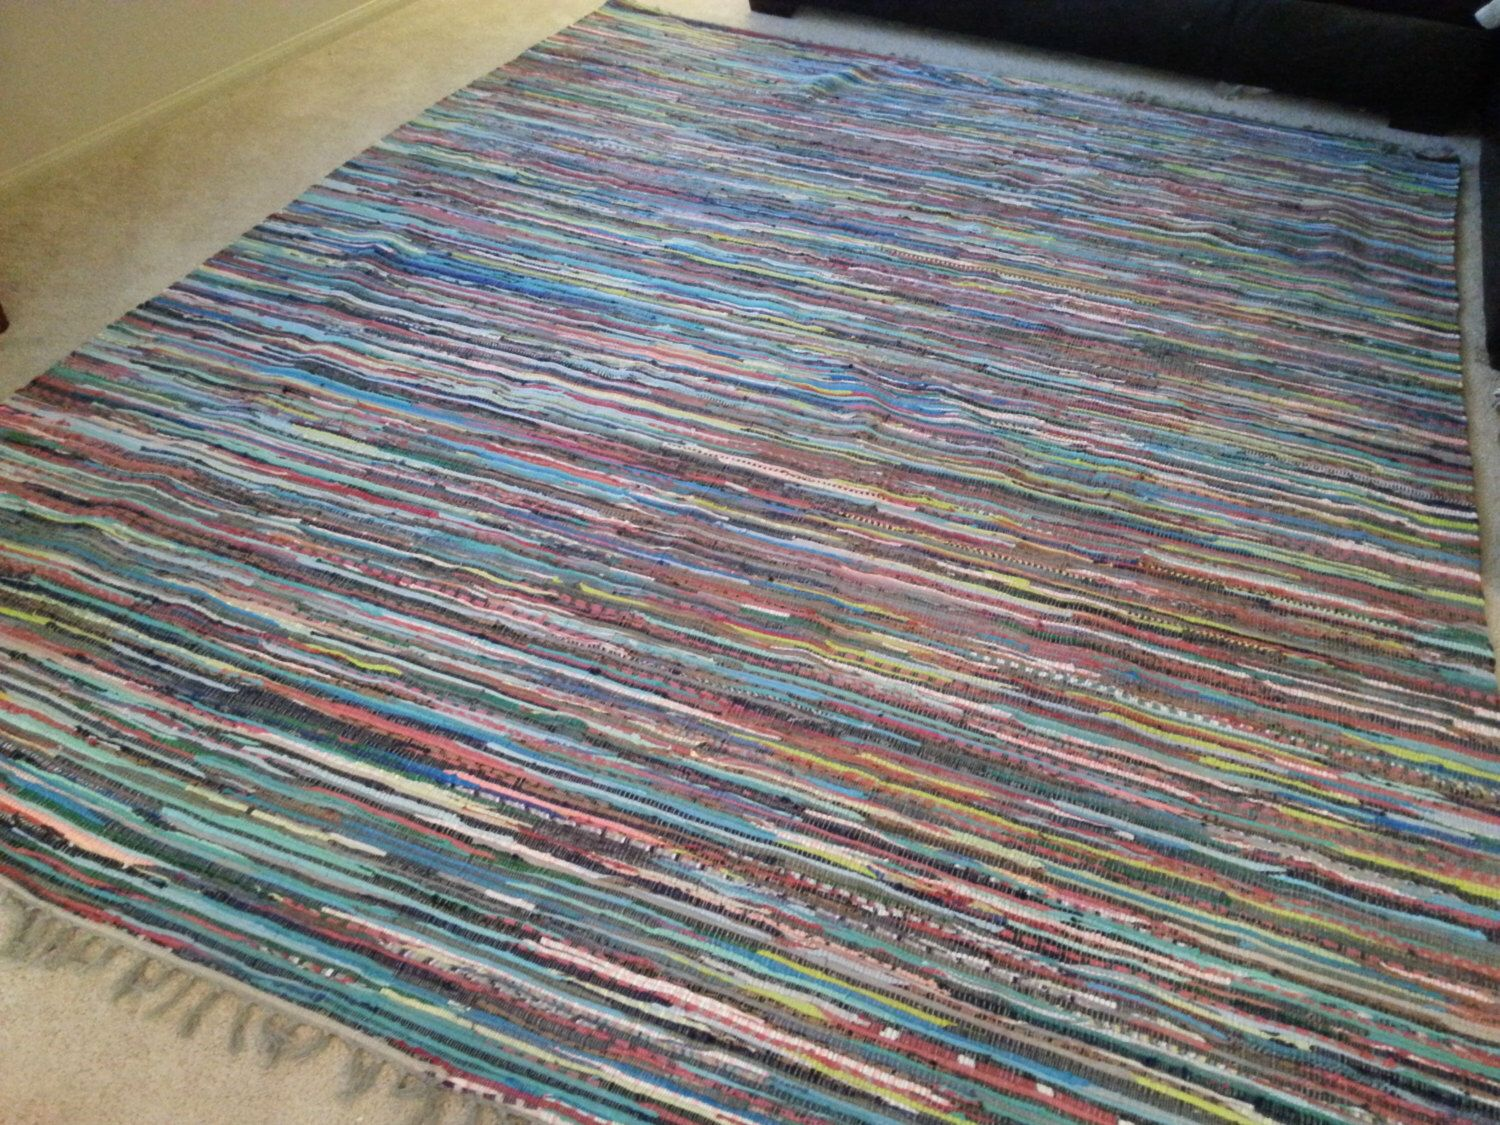 8x10 Rag Rug Chindi Cotton Rugs Scandinavian Large Area Colorful Floor Covering Hand Woven Loom Boho Chic Hippie Free Shipping